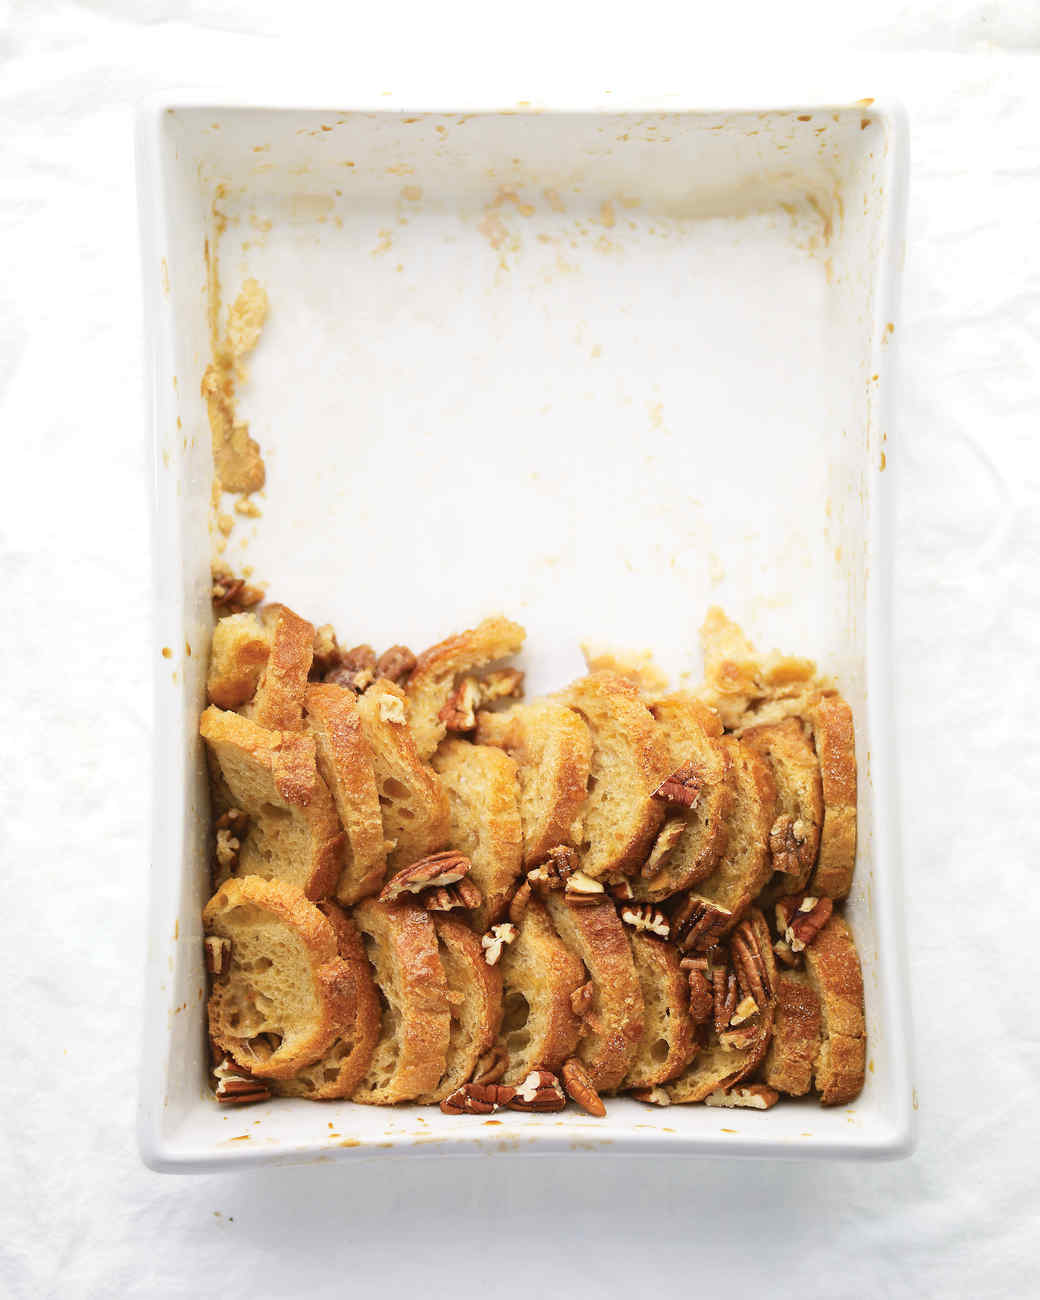 med104831_0909_breadpudding.jpg